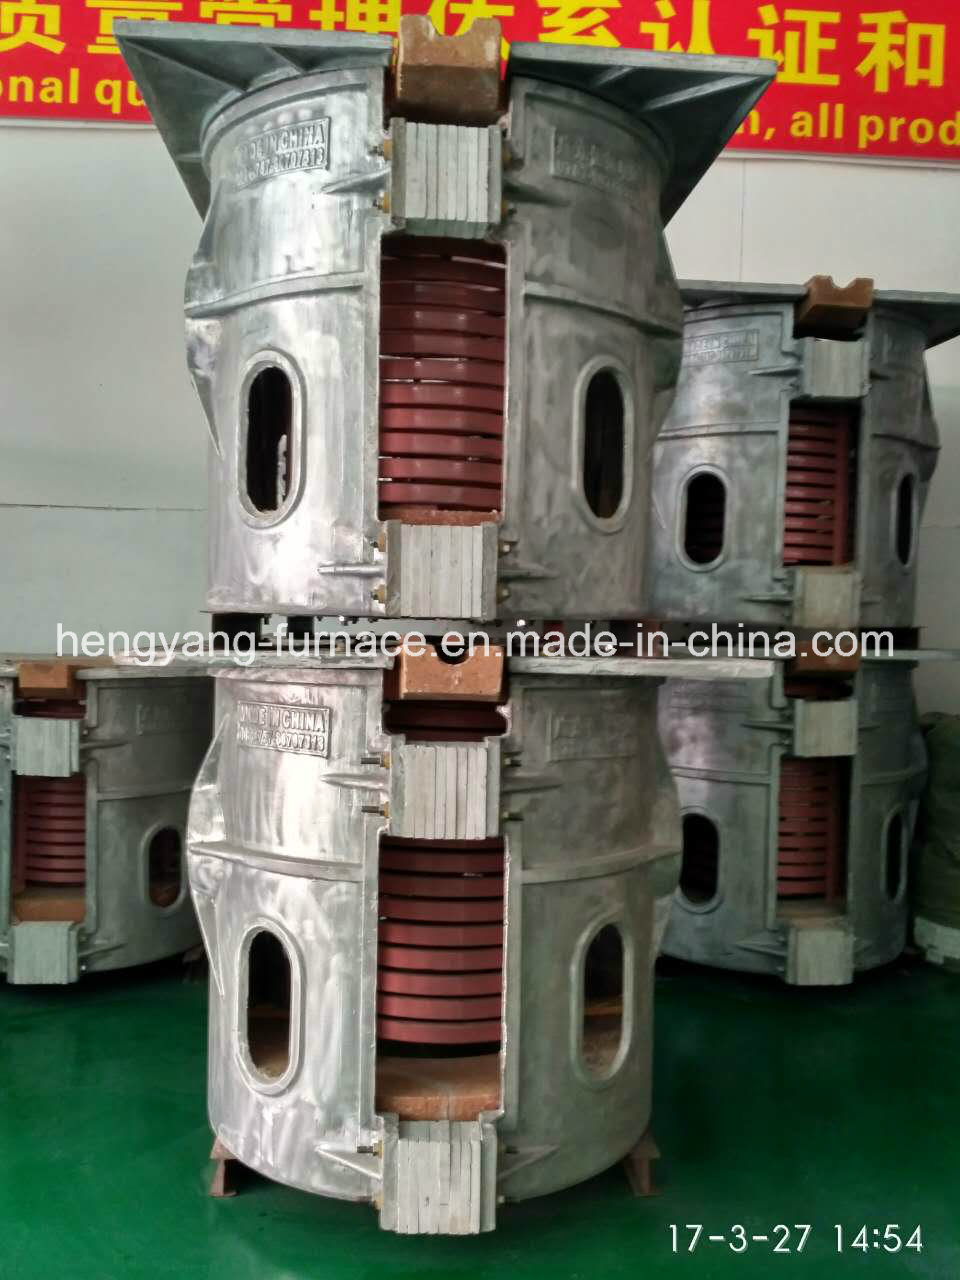 Intermediate Frequency Melting Machine for Aluminum/Cpopper/Gold Concentrate /Silver Concentrate